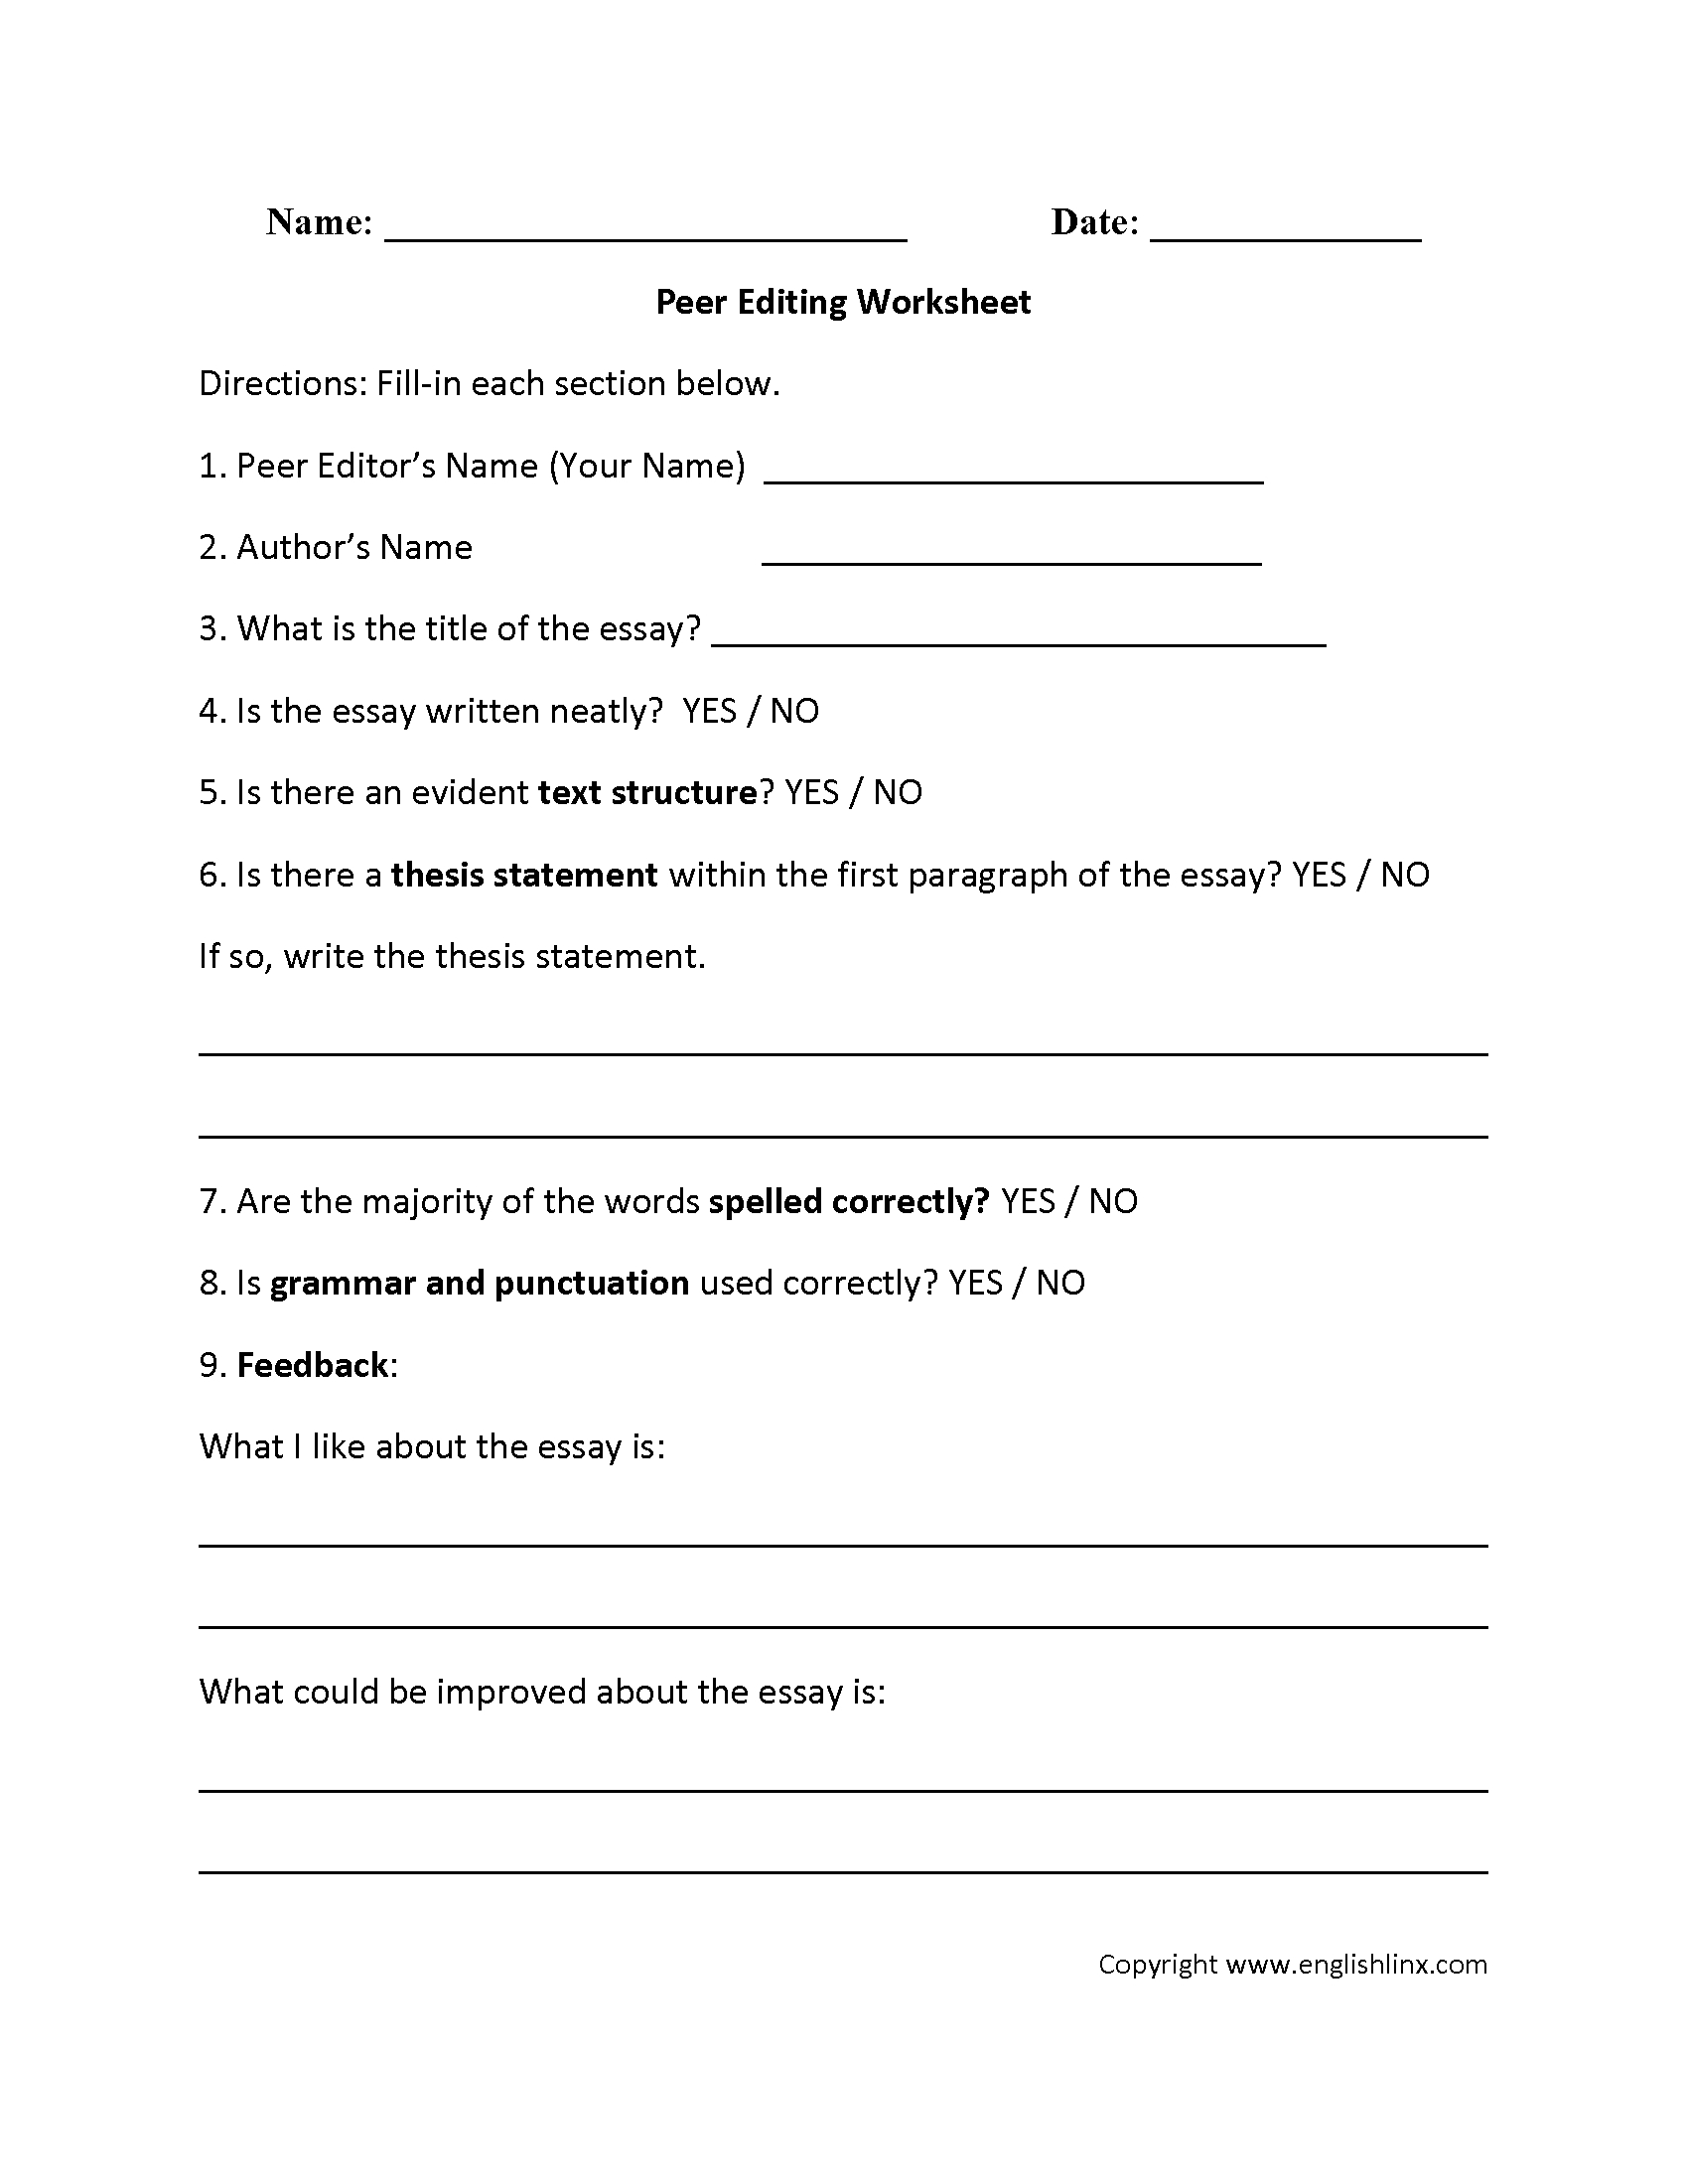 Writing Worksheets | Editing Worksheets | Free Printable Editing Worksheets For 5Th Grade